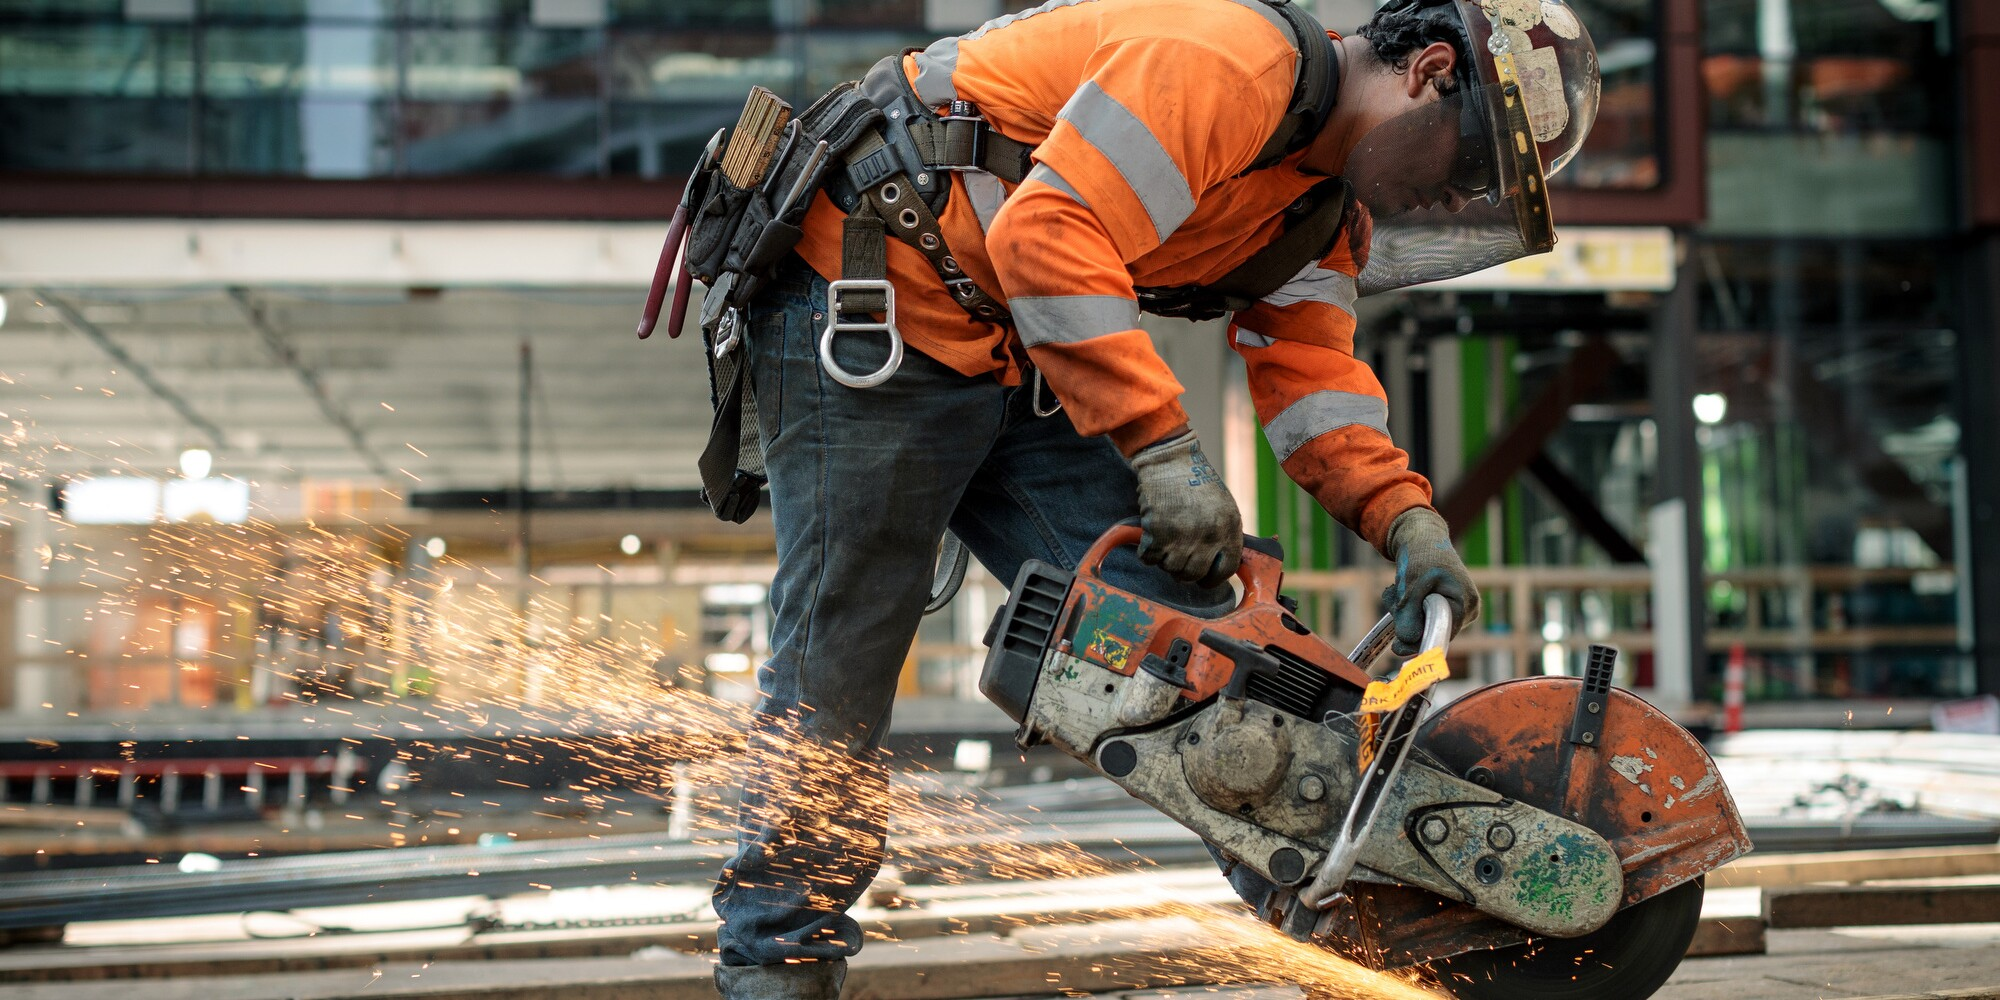 A man in construction helmet and orange safety jacket is photographed at a construction site on Amazon's campus in Seattle, WA. he is using a saw to cut through tubing.